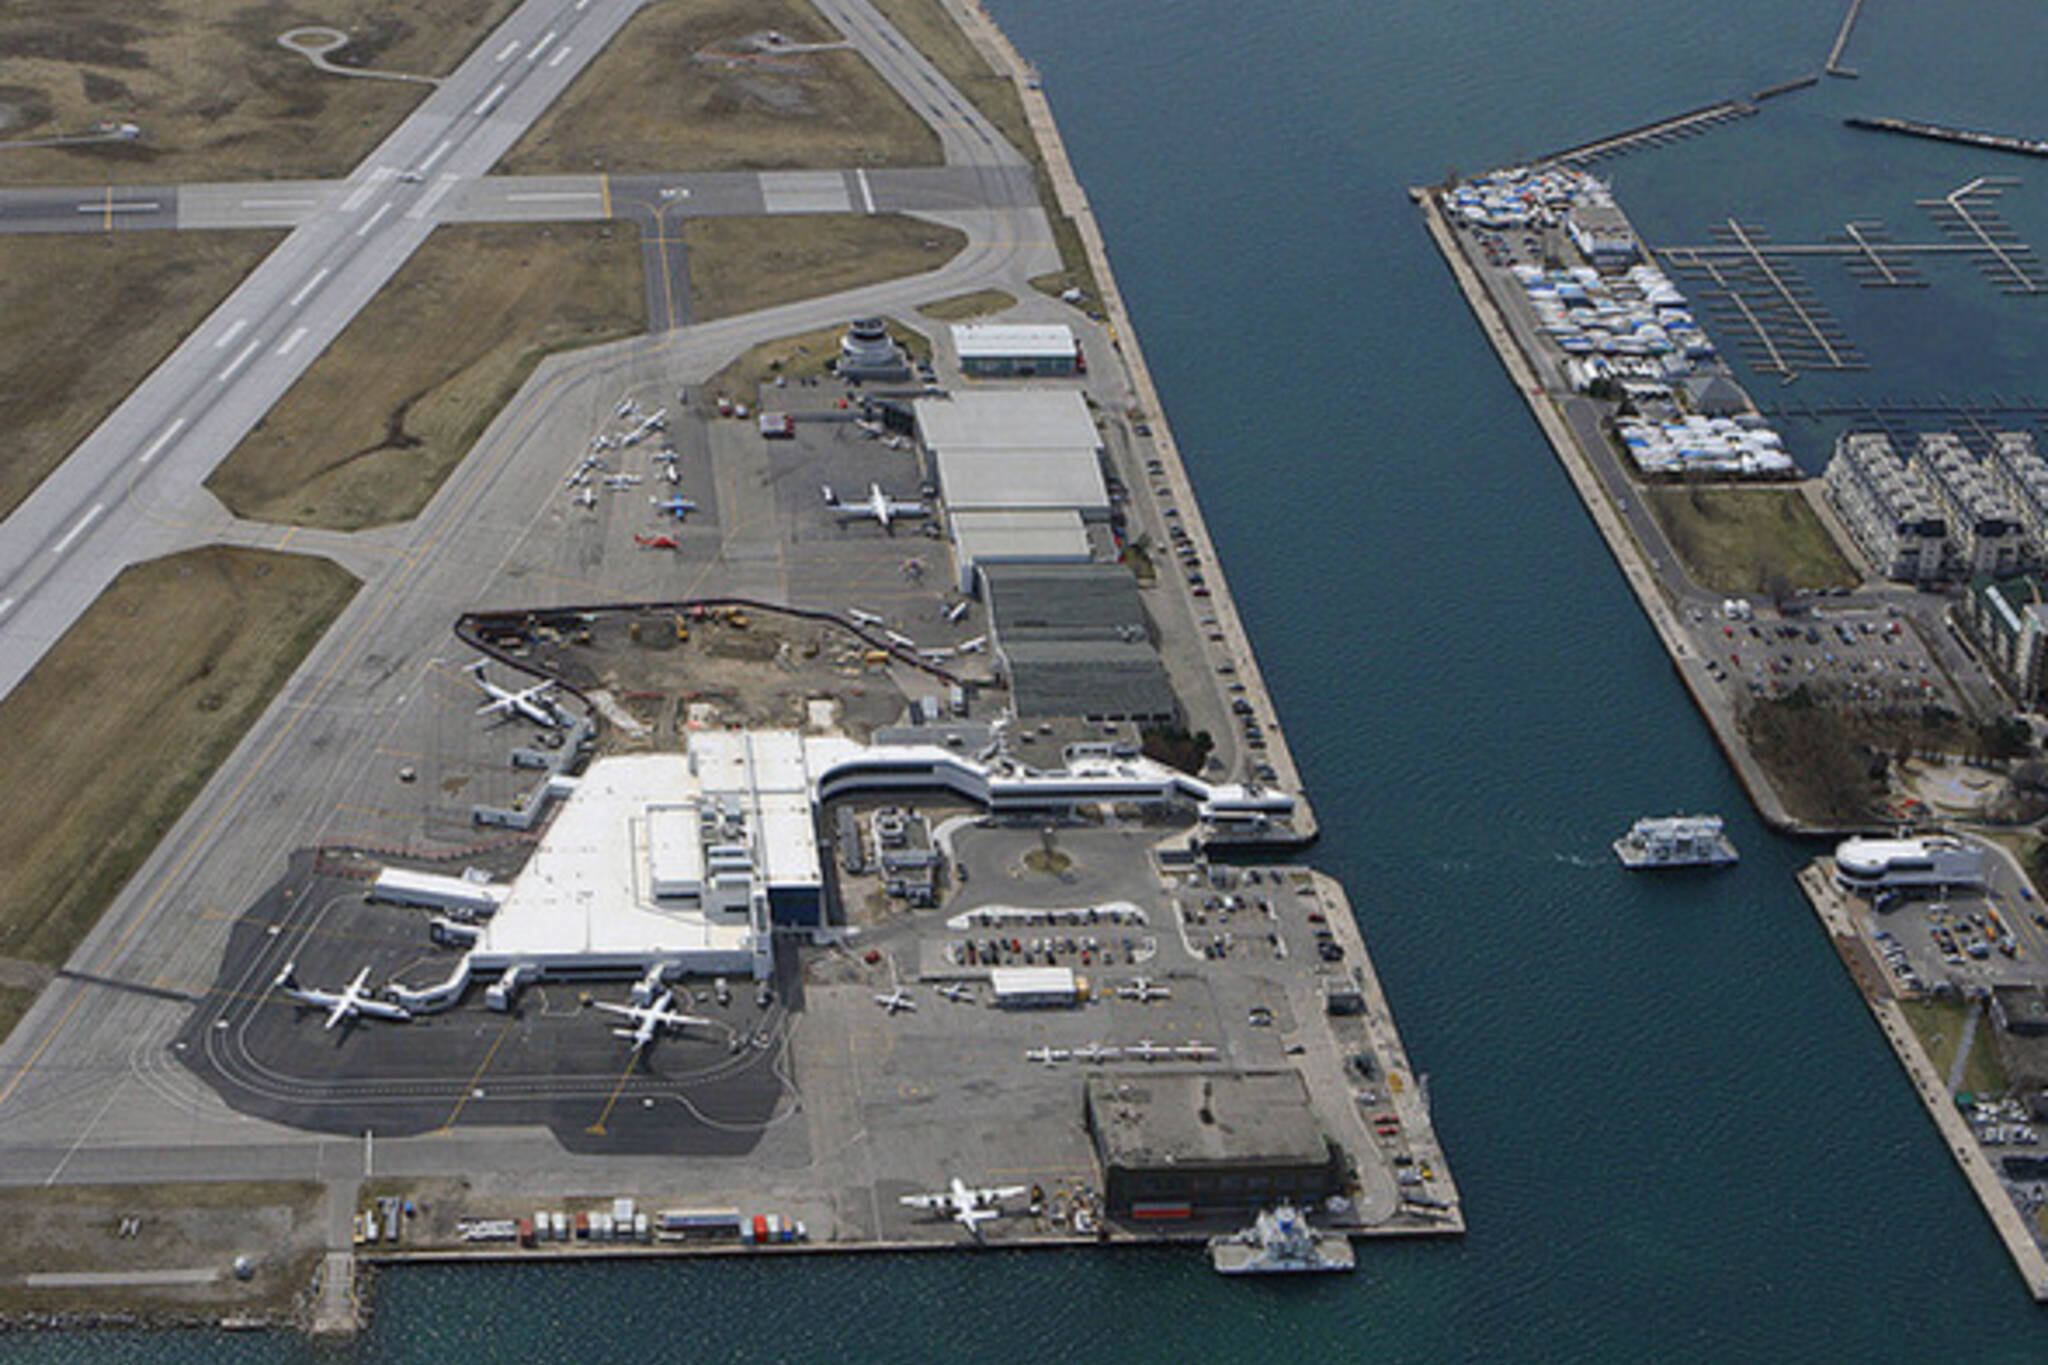 Porter Island Airport Expansion